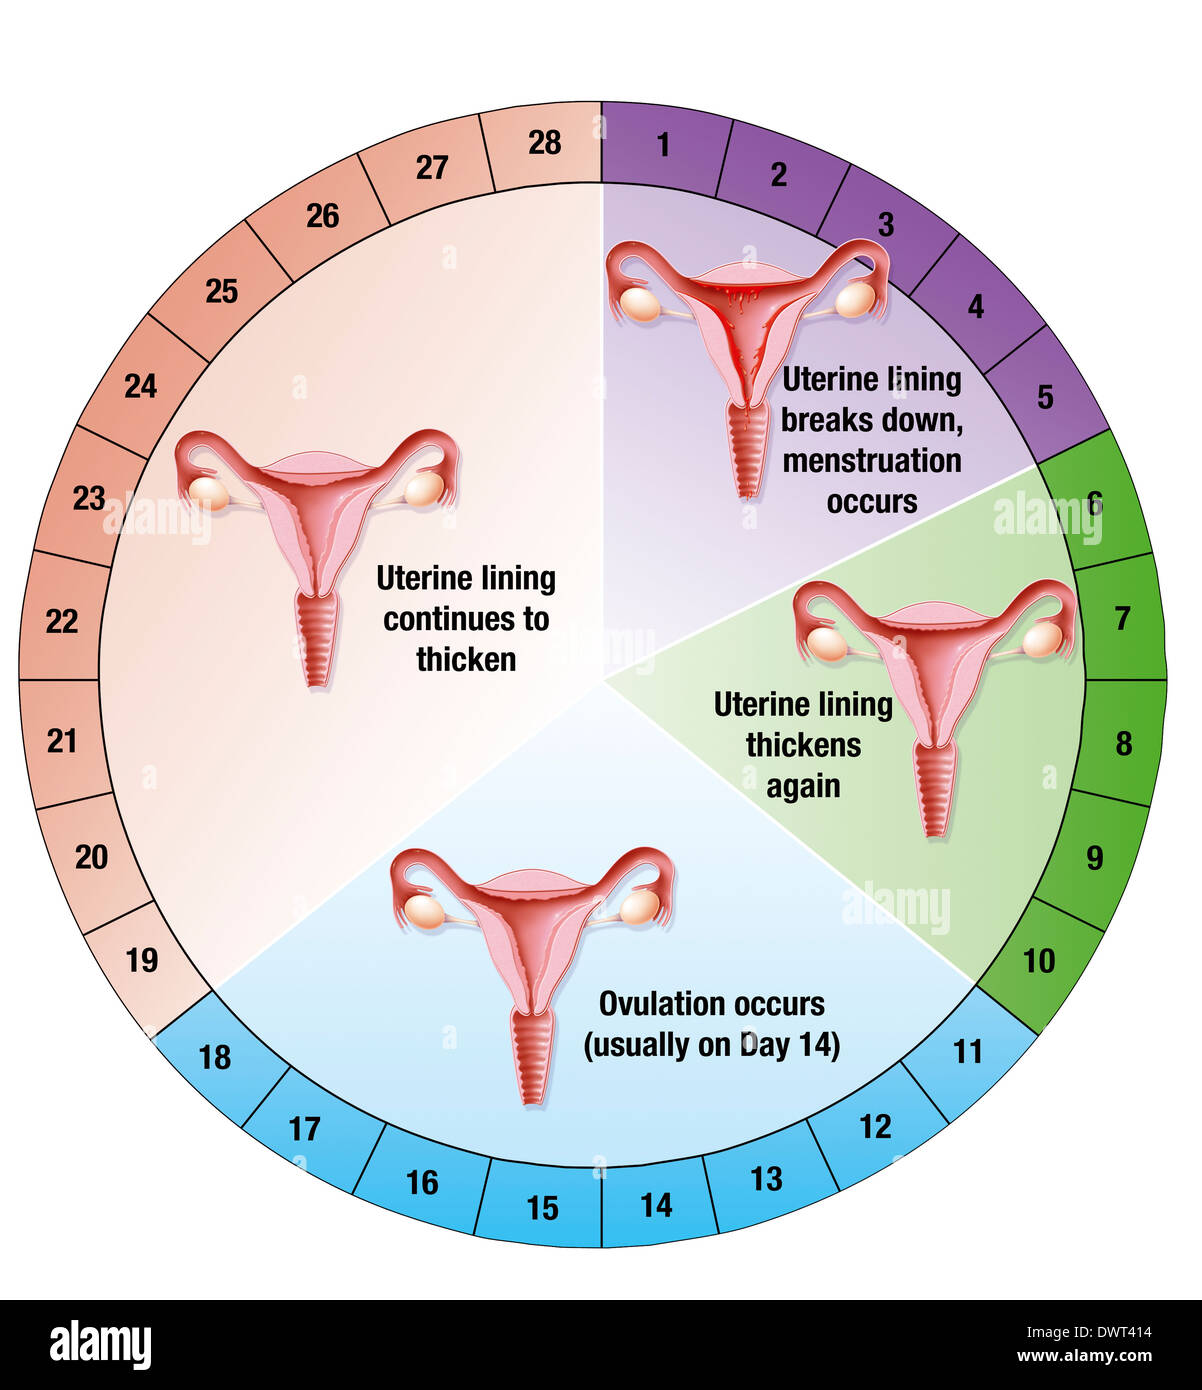 Menstrual cycle drawing stock photo 67527520 alamy menstrual cycle drawing ccuart Image collections